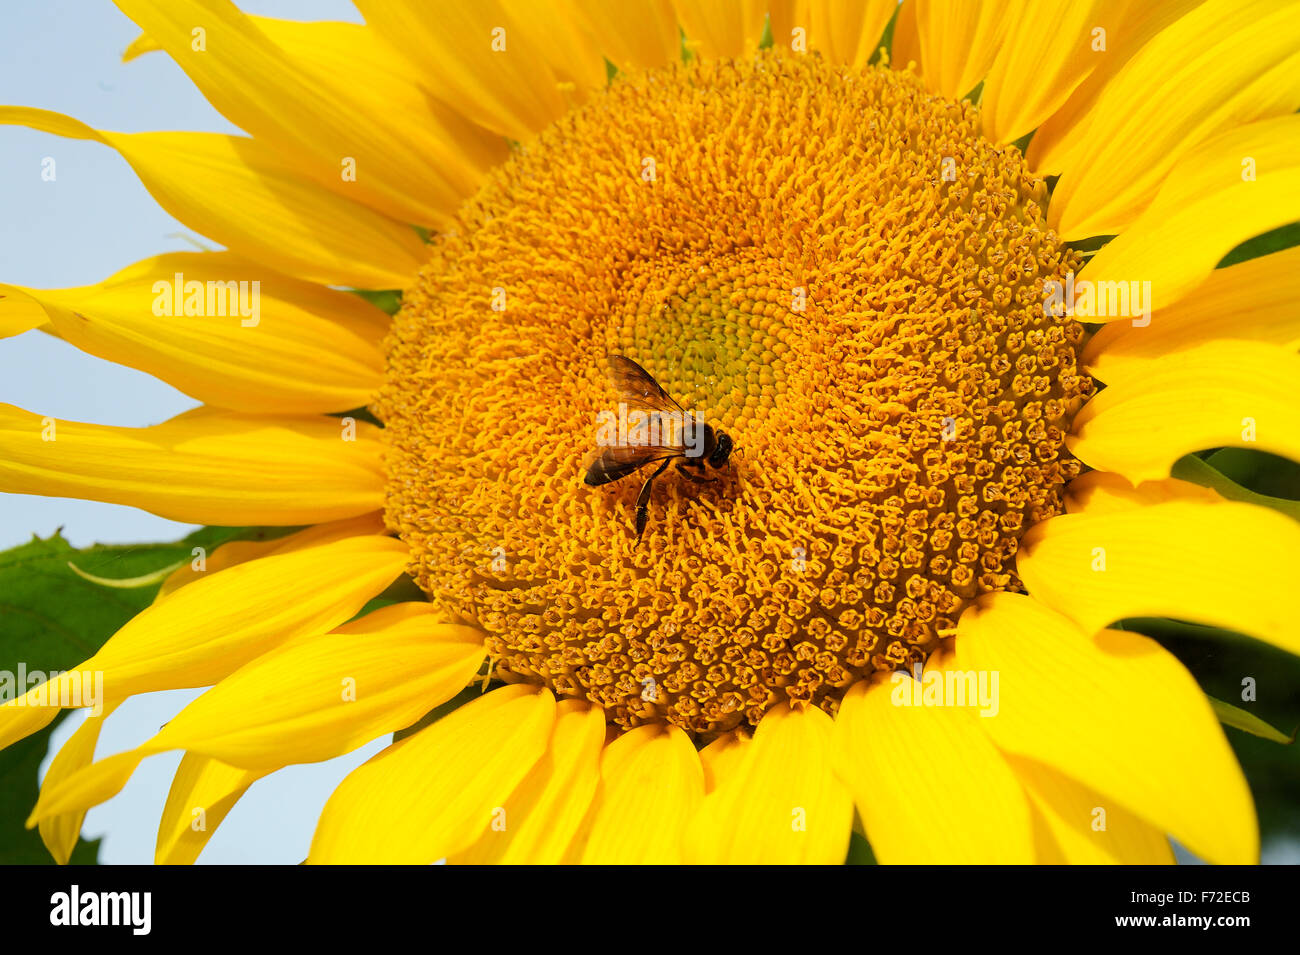 Pollen Flowers Honeybee India Stock Photos   Pollen Flowers Honeybee     Bumble bee on sunflower  gundlupet  karnataka  india  asia   Stock Image